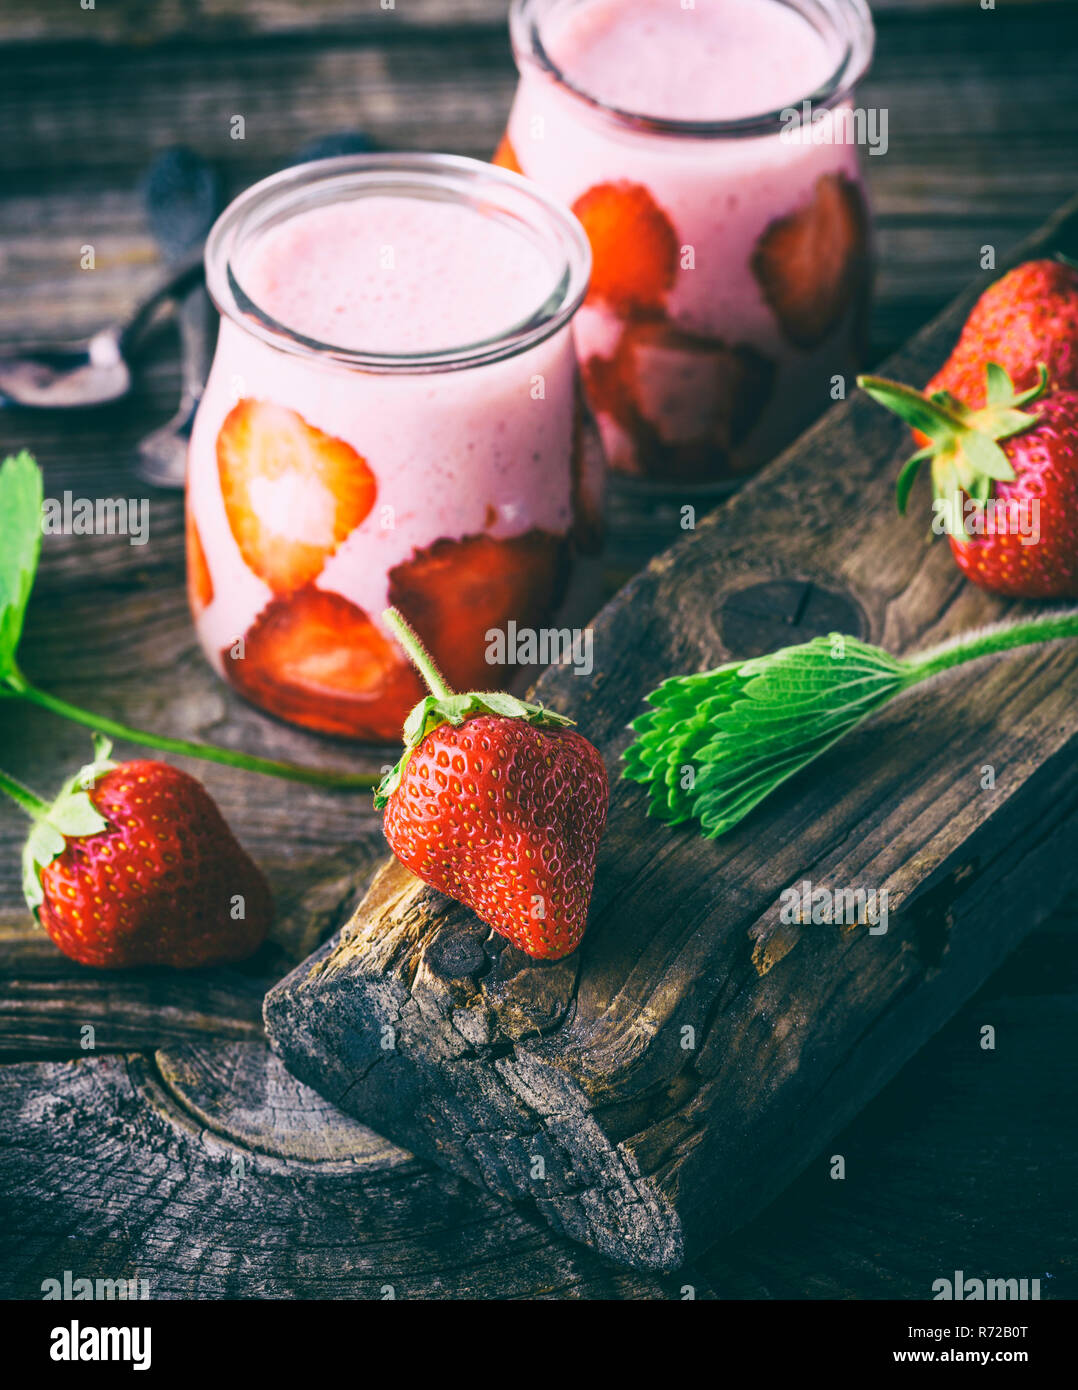 red strawberry and two glass jars of smoothies Stock Photo